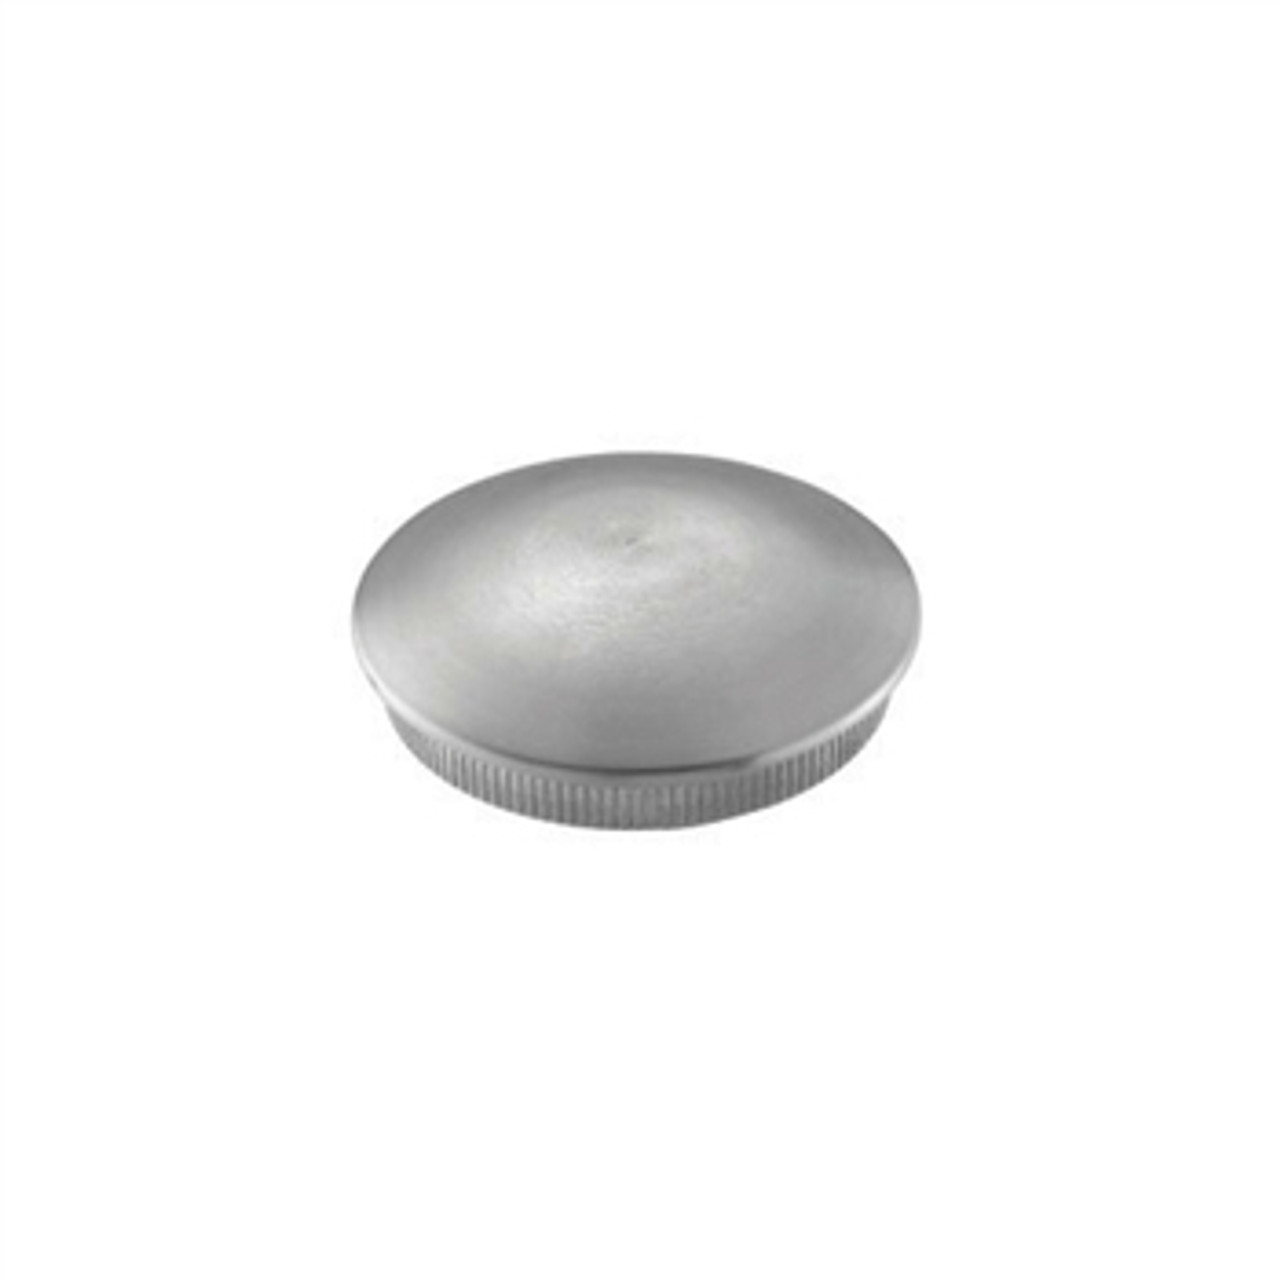 E0117 Stainless Steel End Cap Rounded